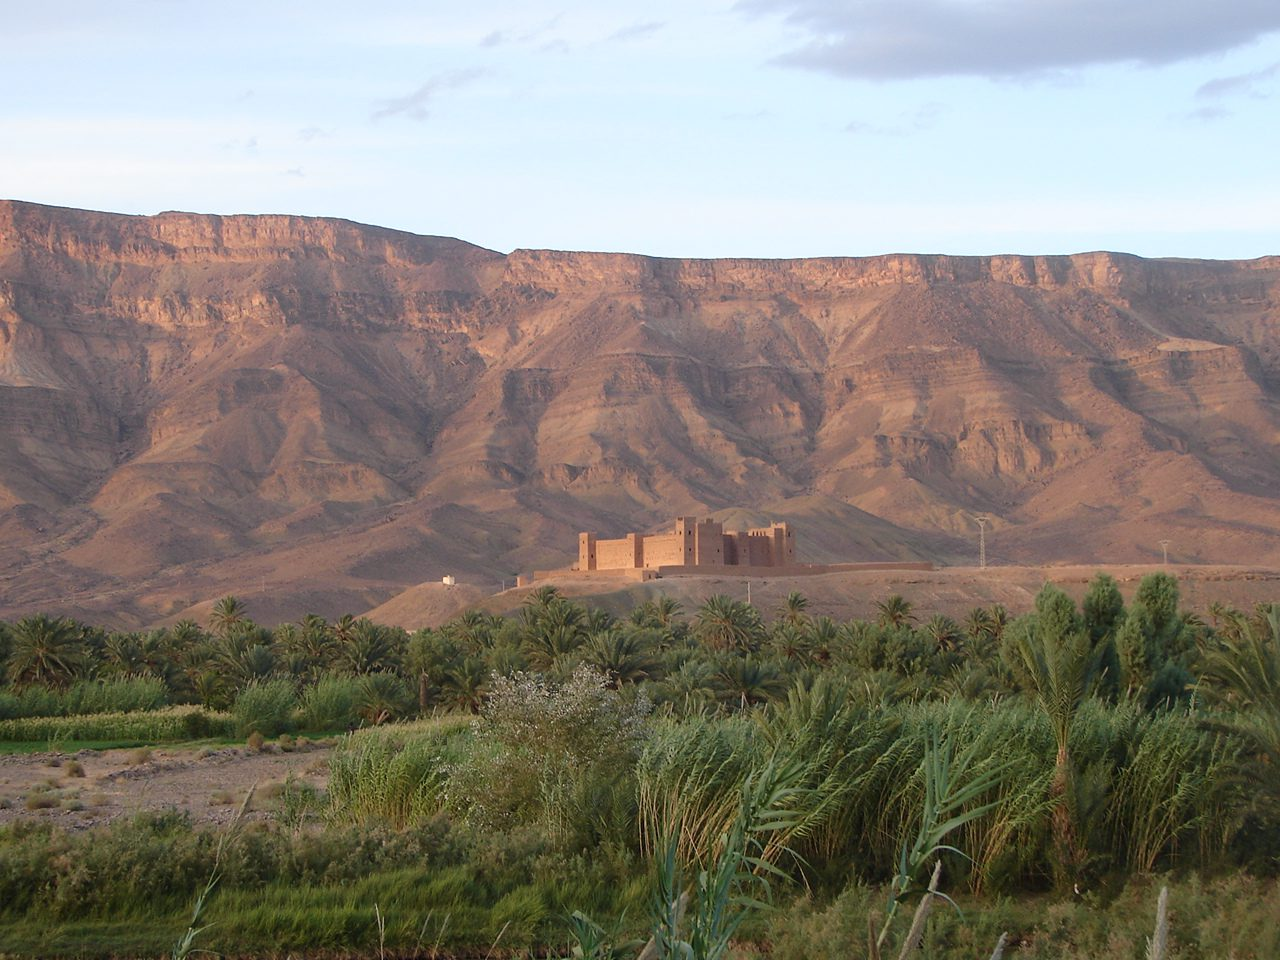 Ouarzazate in the distance, surrounded by green desert and mountains